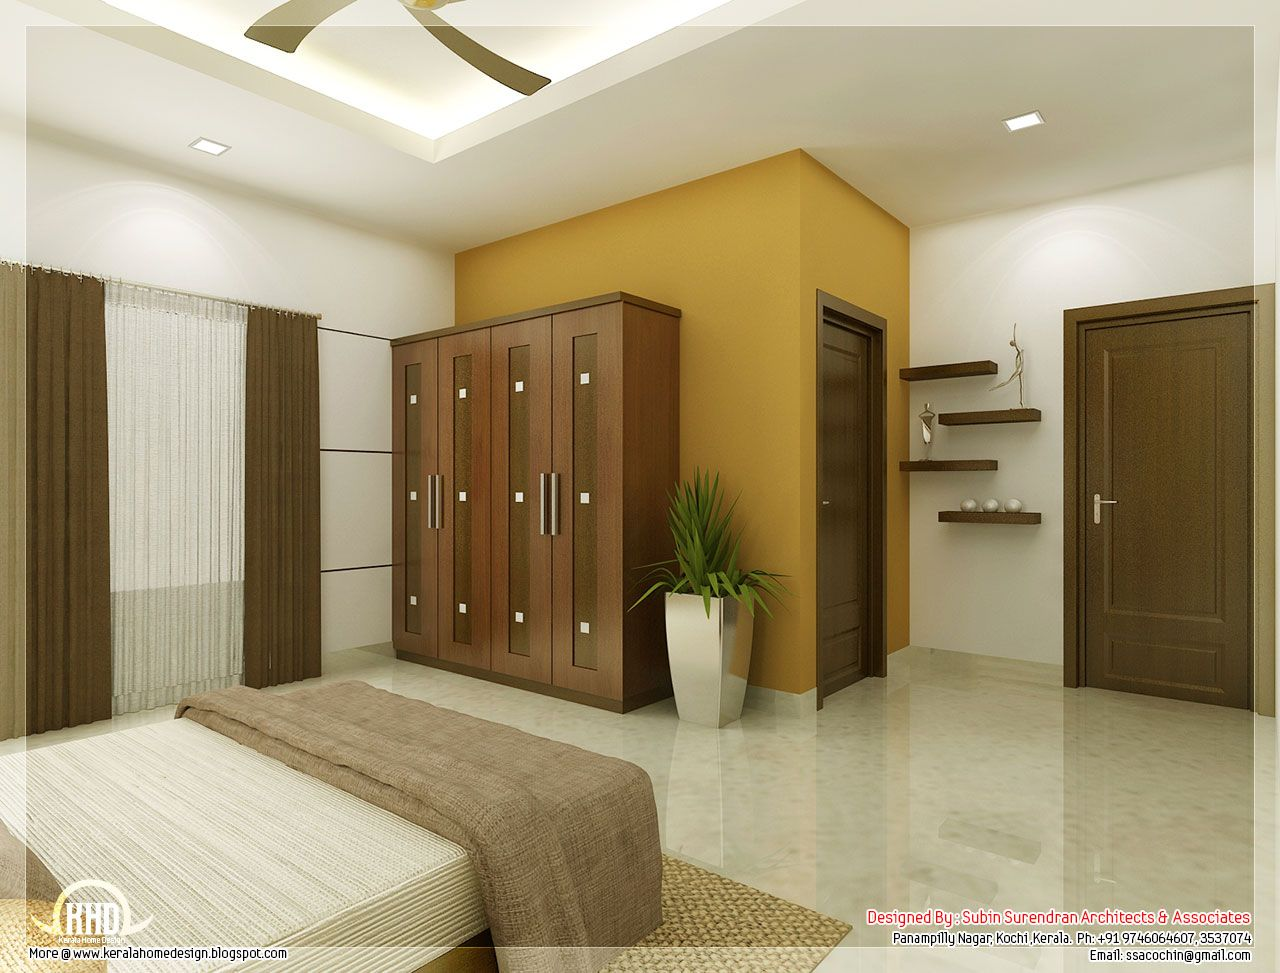 Interior design ideas for small homes in kerala thated roof bungalow house interior designs bungalow house  home